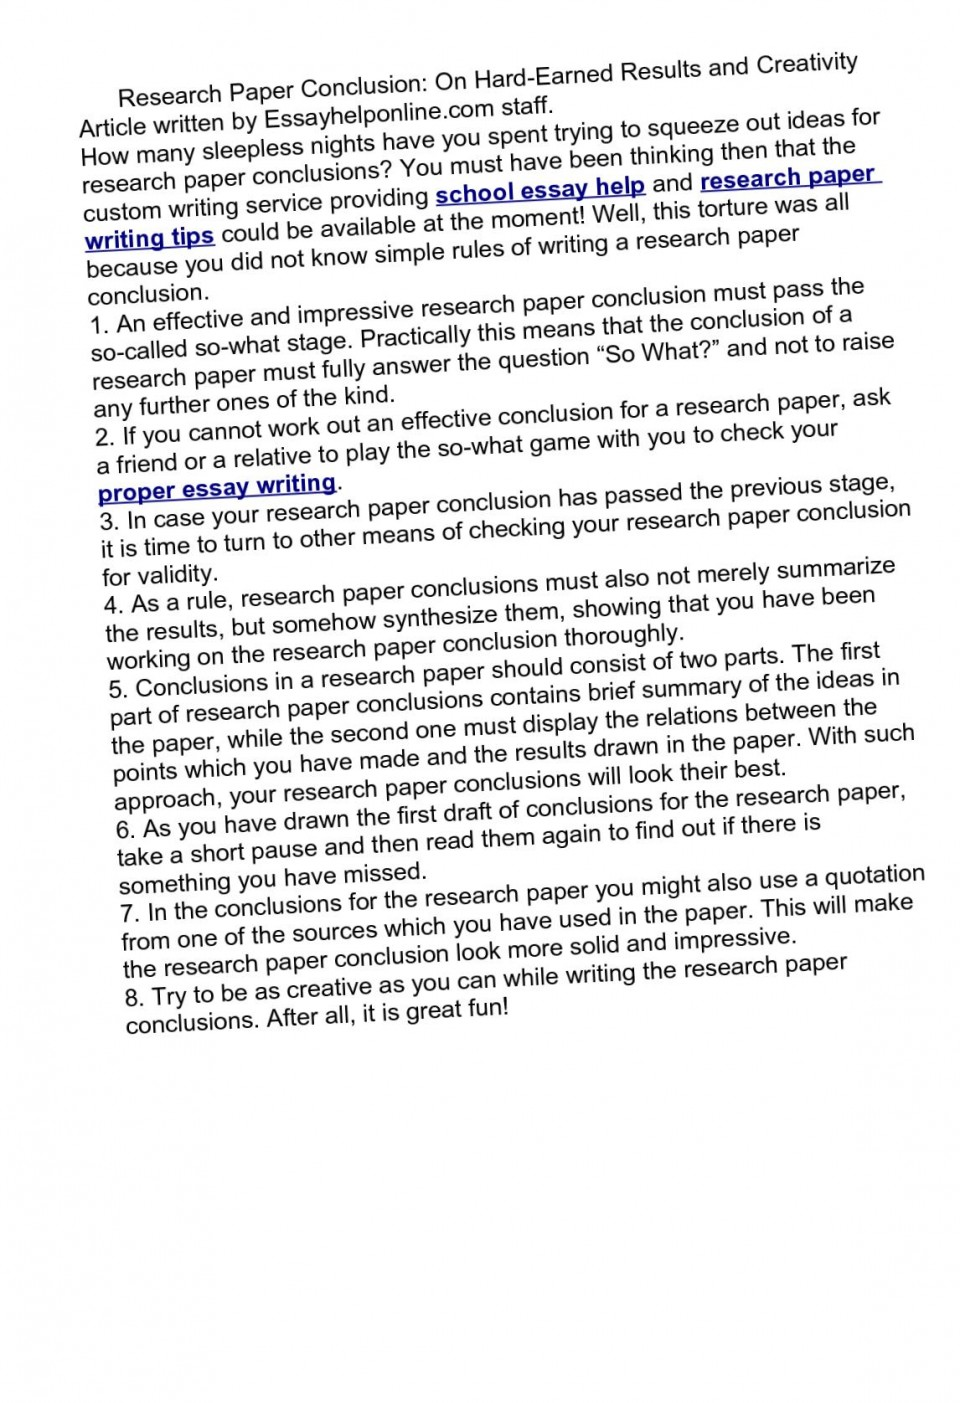 017 Conclusion For Research Paper On Example 14421 Staggering A Writing Good Abortion How To Write Science 960